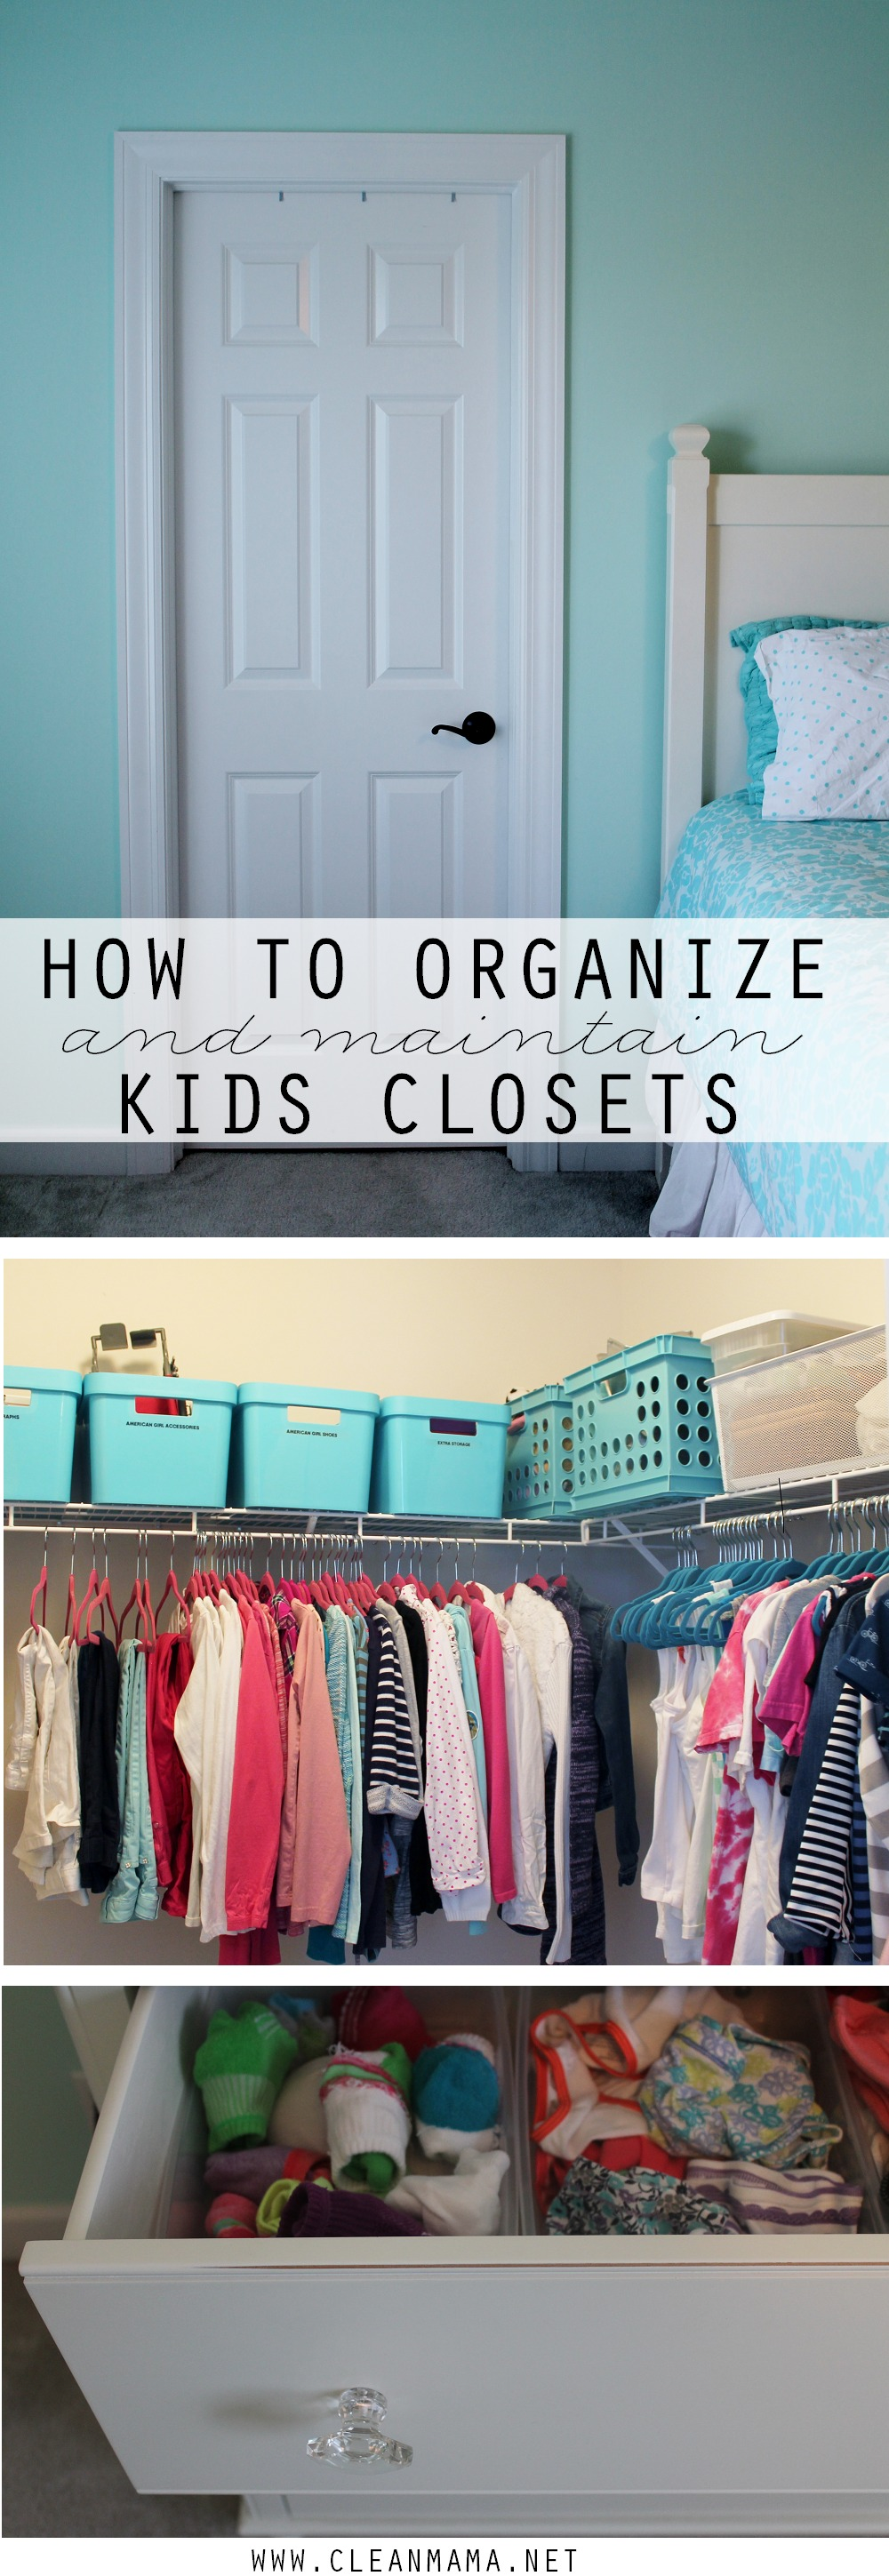 kid a organized closets kids stay good find girls how get closet pin organize guest blogger motivation to the way like looks